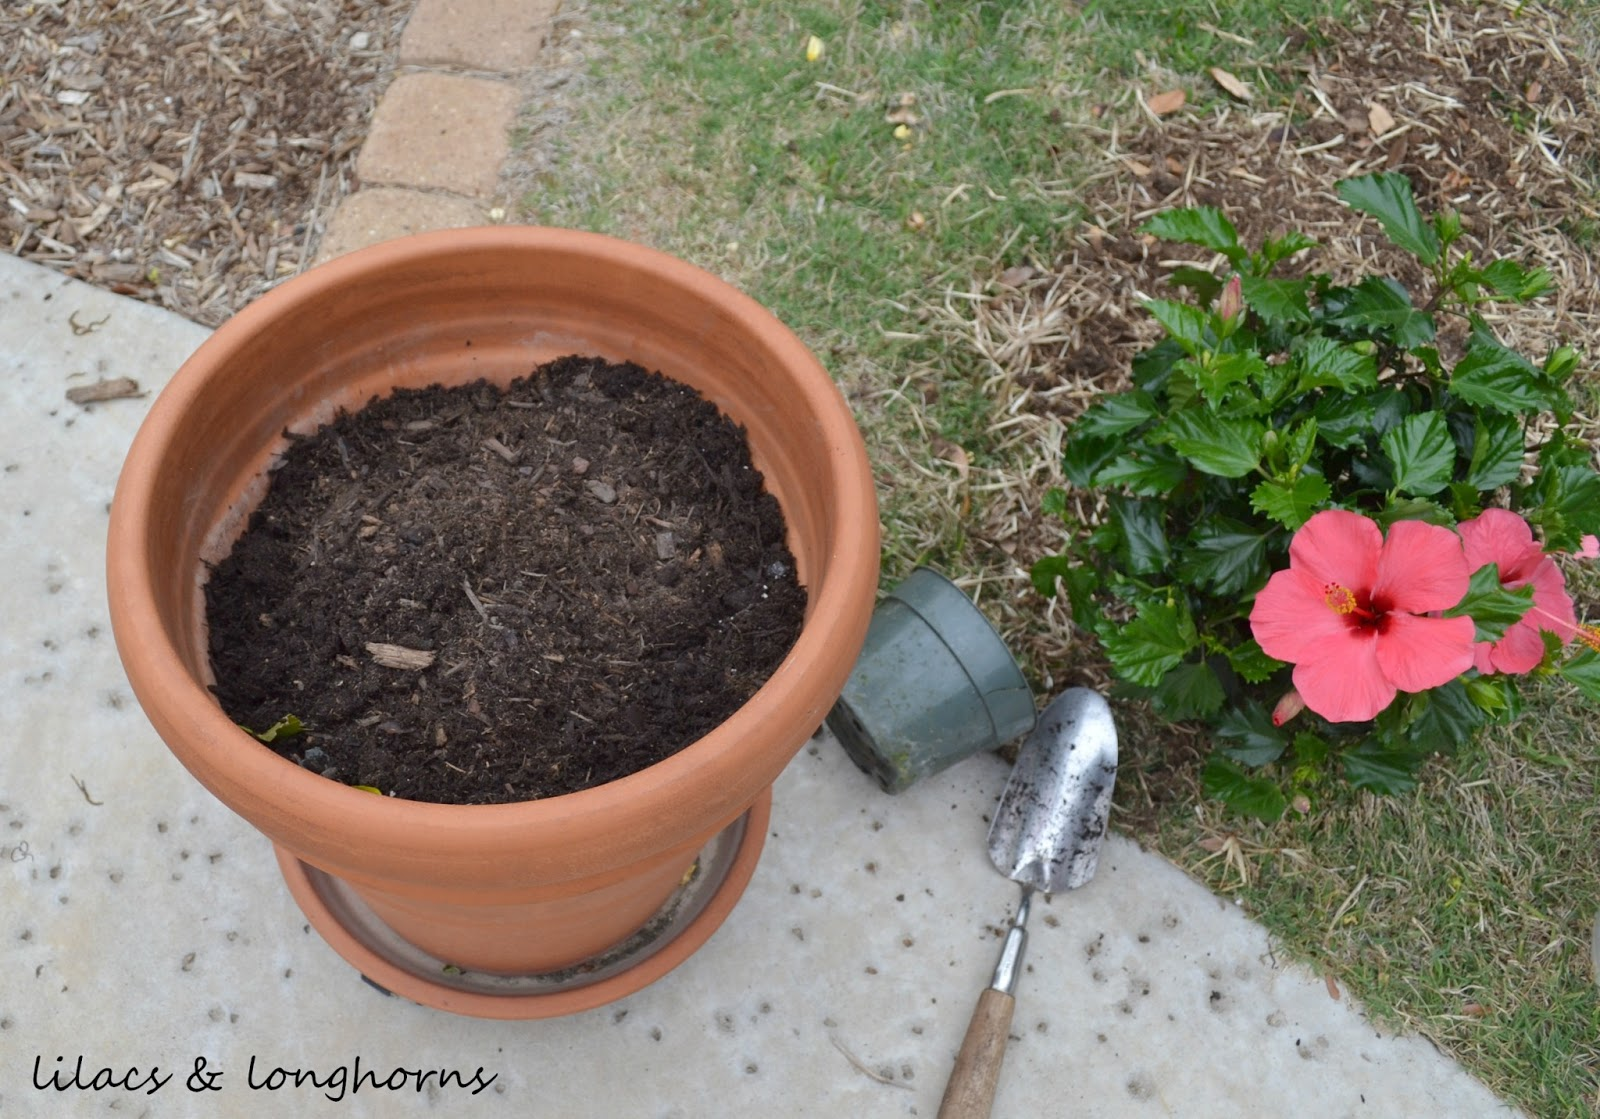 How to plant in large pots without spending a fortune lilacs and longhornslilacs and longhorns - Seven tricks for healthier potted plants ...